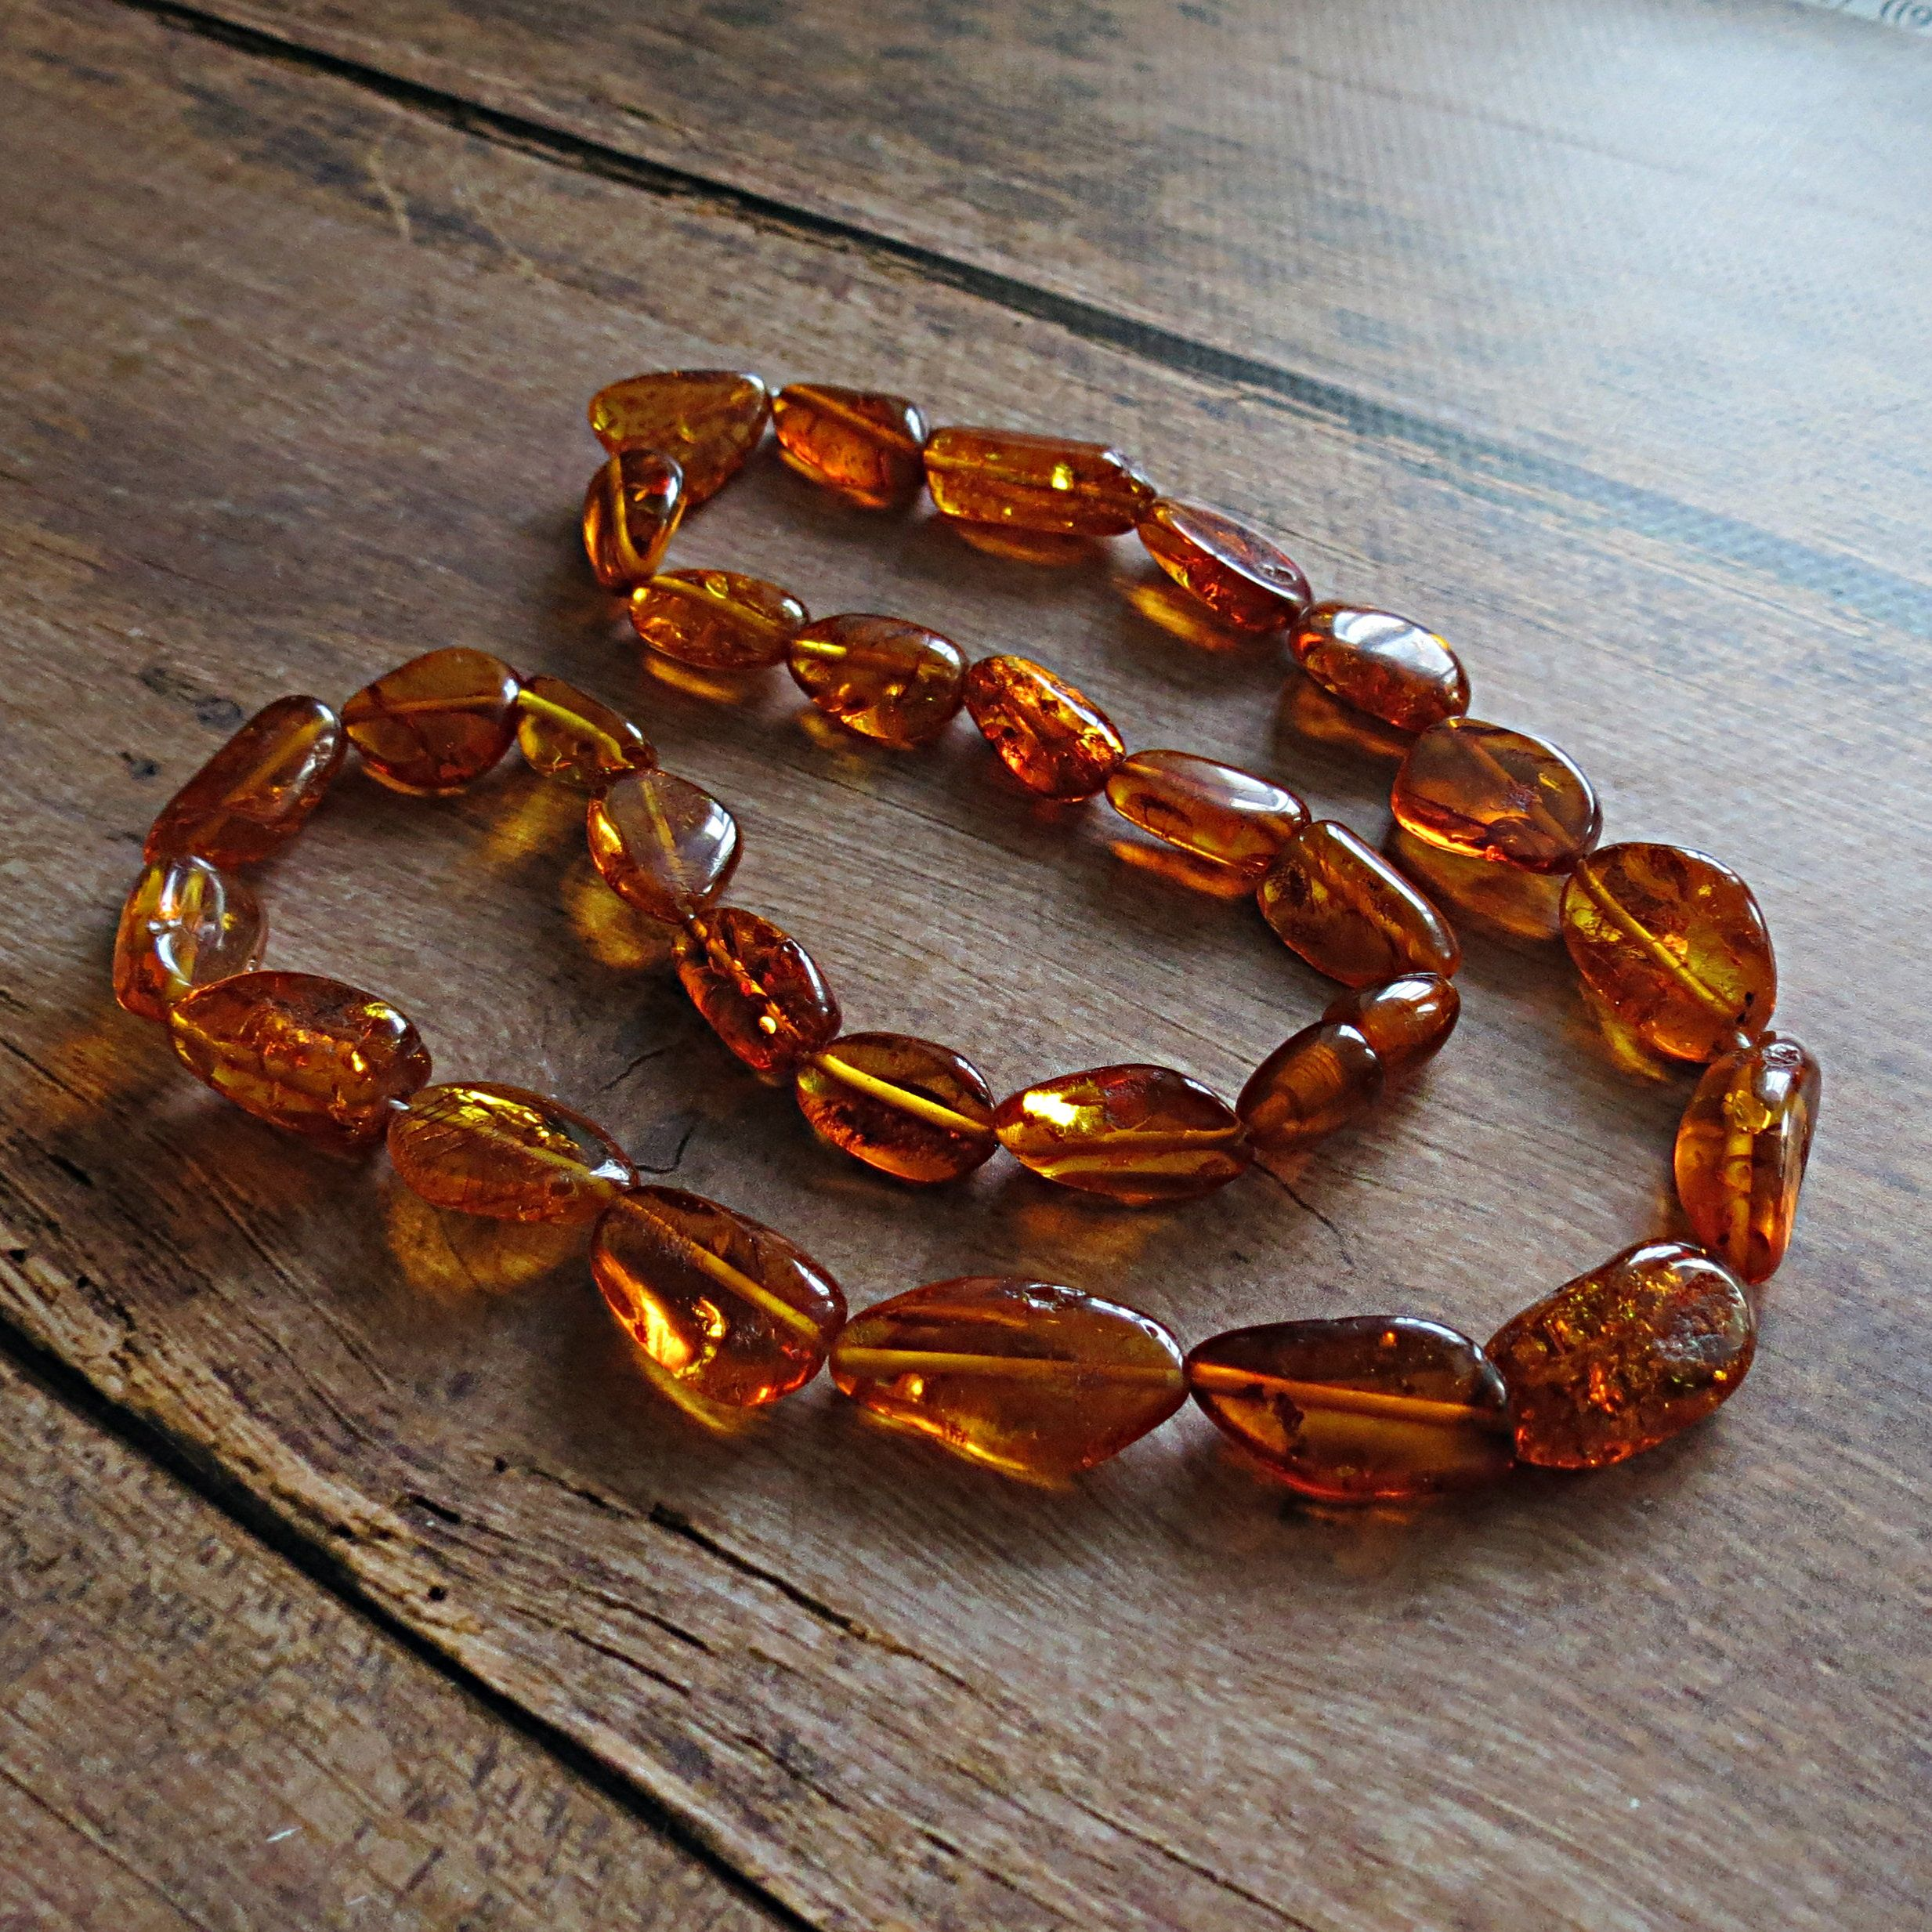 Women Amber Jewelry Amber Gift Bernsteinkette Natural Amber Necklace for Women Multicolor Baltic Amber Necklace Natural Amber Beads